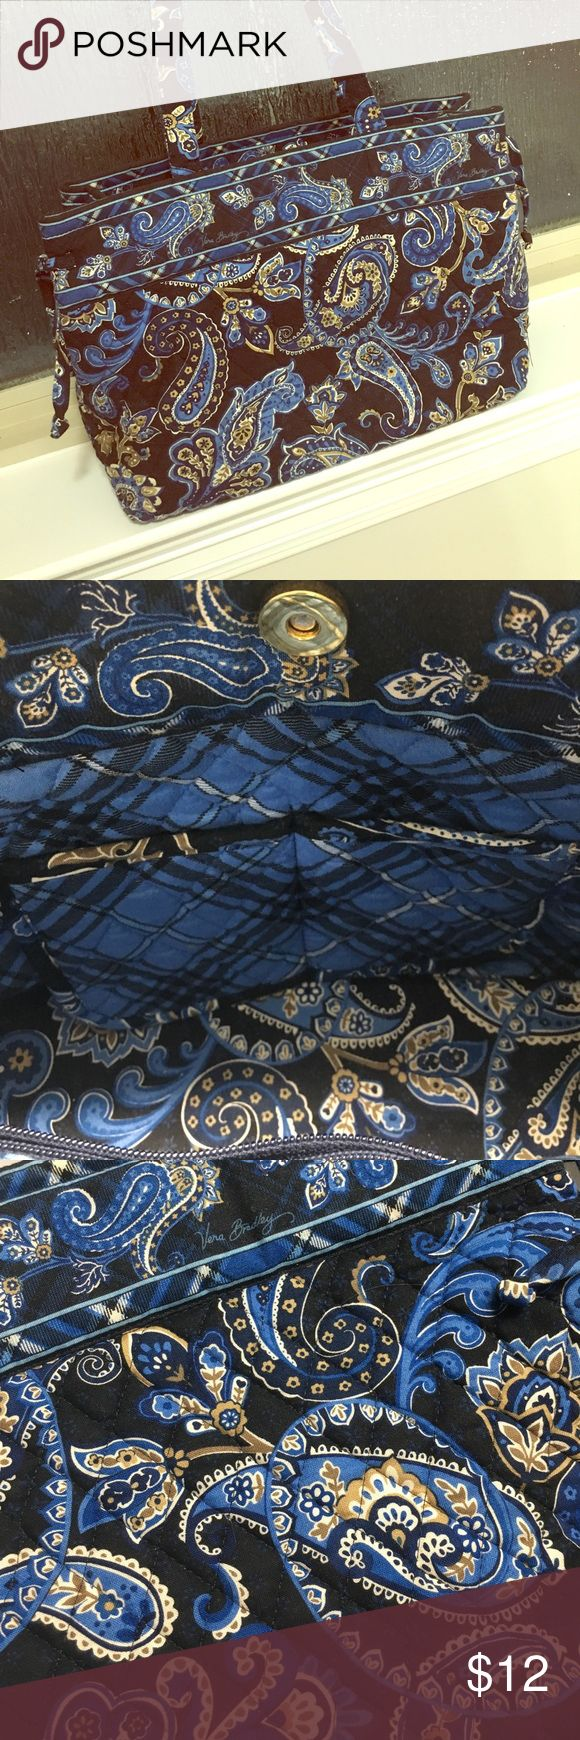 """Vera Bradley Tote Bag - Retired Pattern Small Vera Bradley Tote Bag in retired pattern """"Windsor Navy."""" Magnetic snap closure. Two small interior slip pockets, plus one zippered pouch. Excellent used condition. Vera Bradley Bags Totes"""